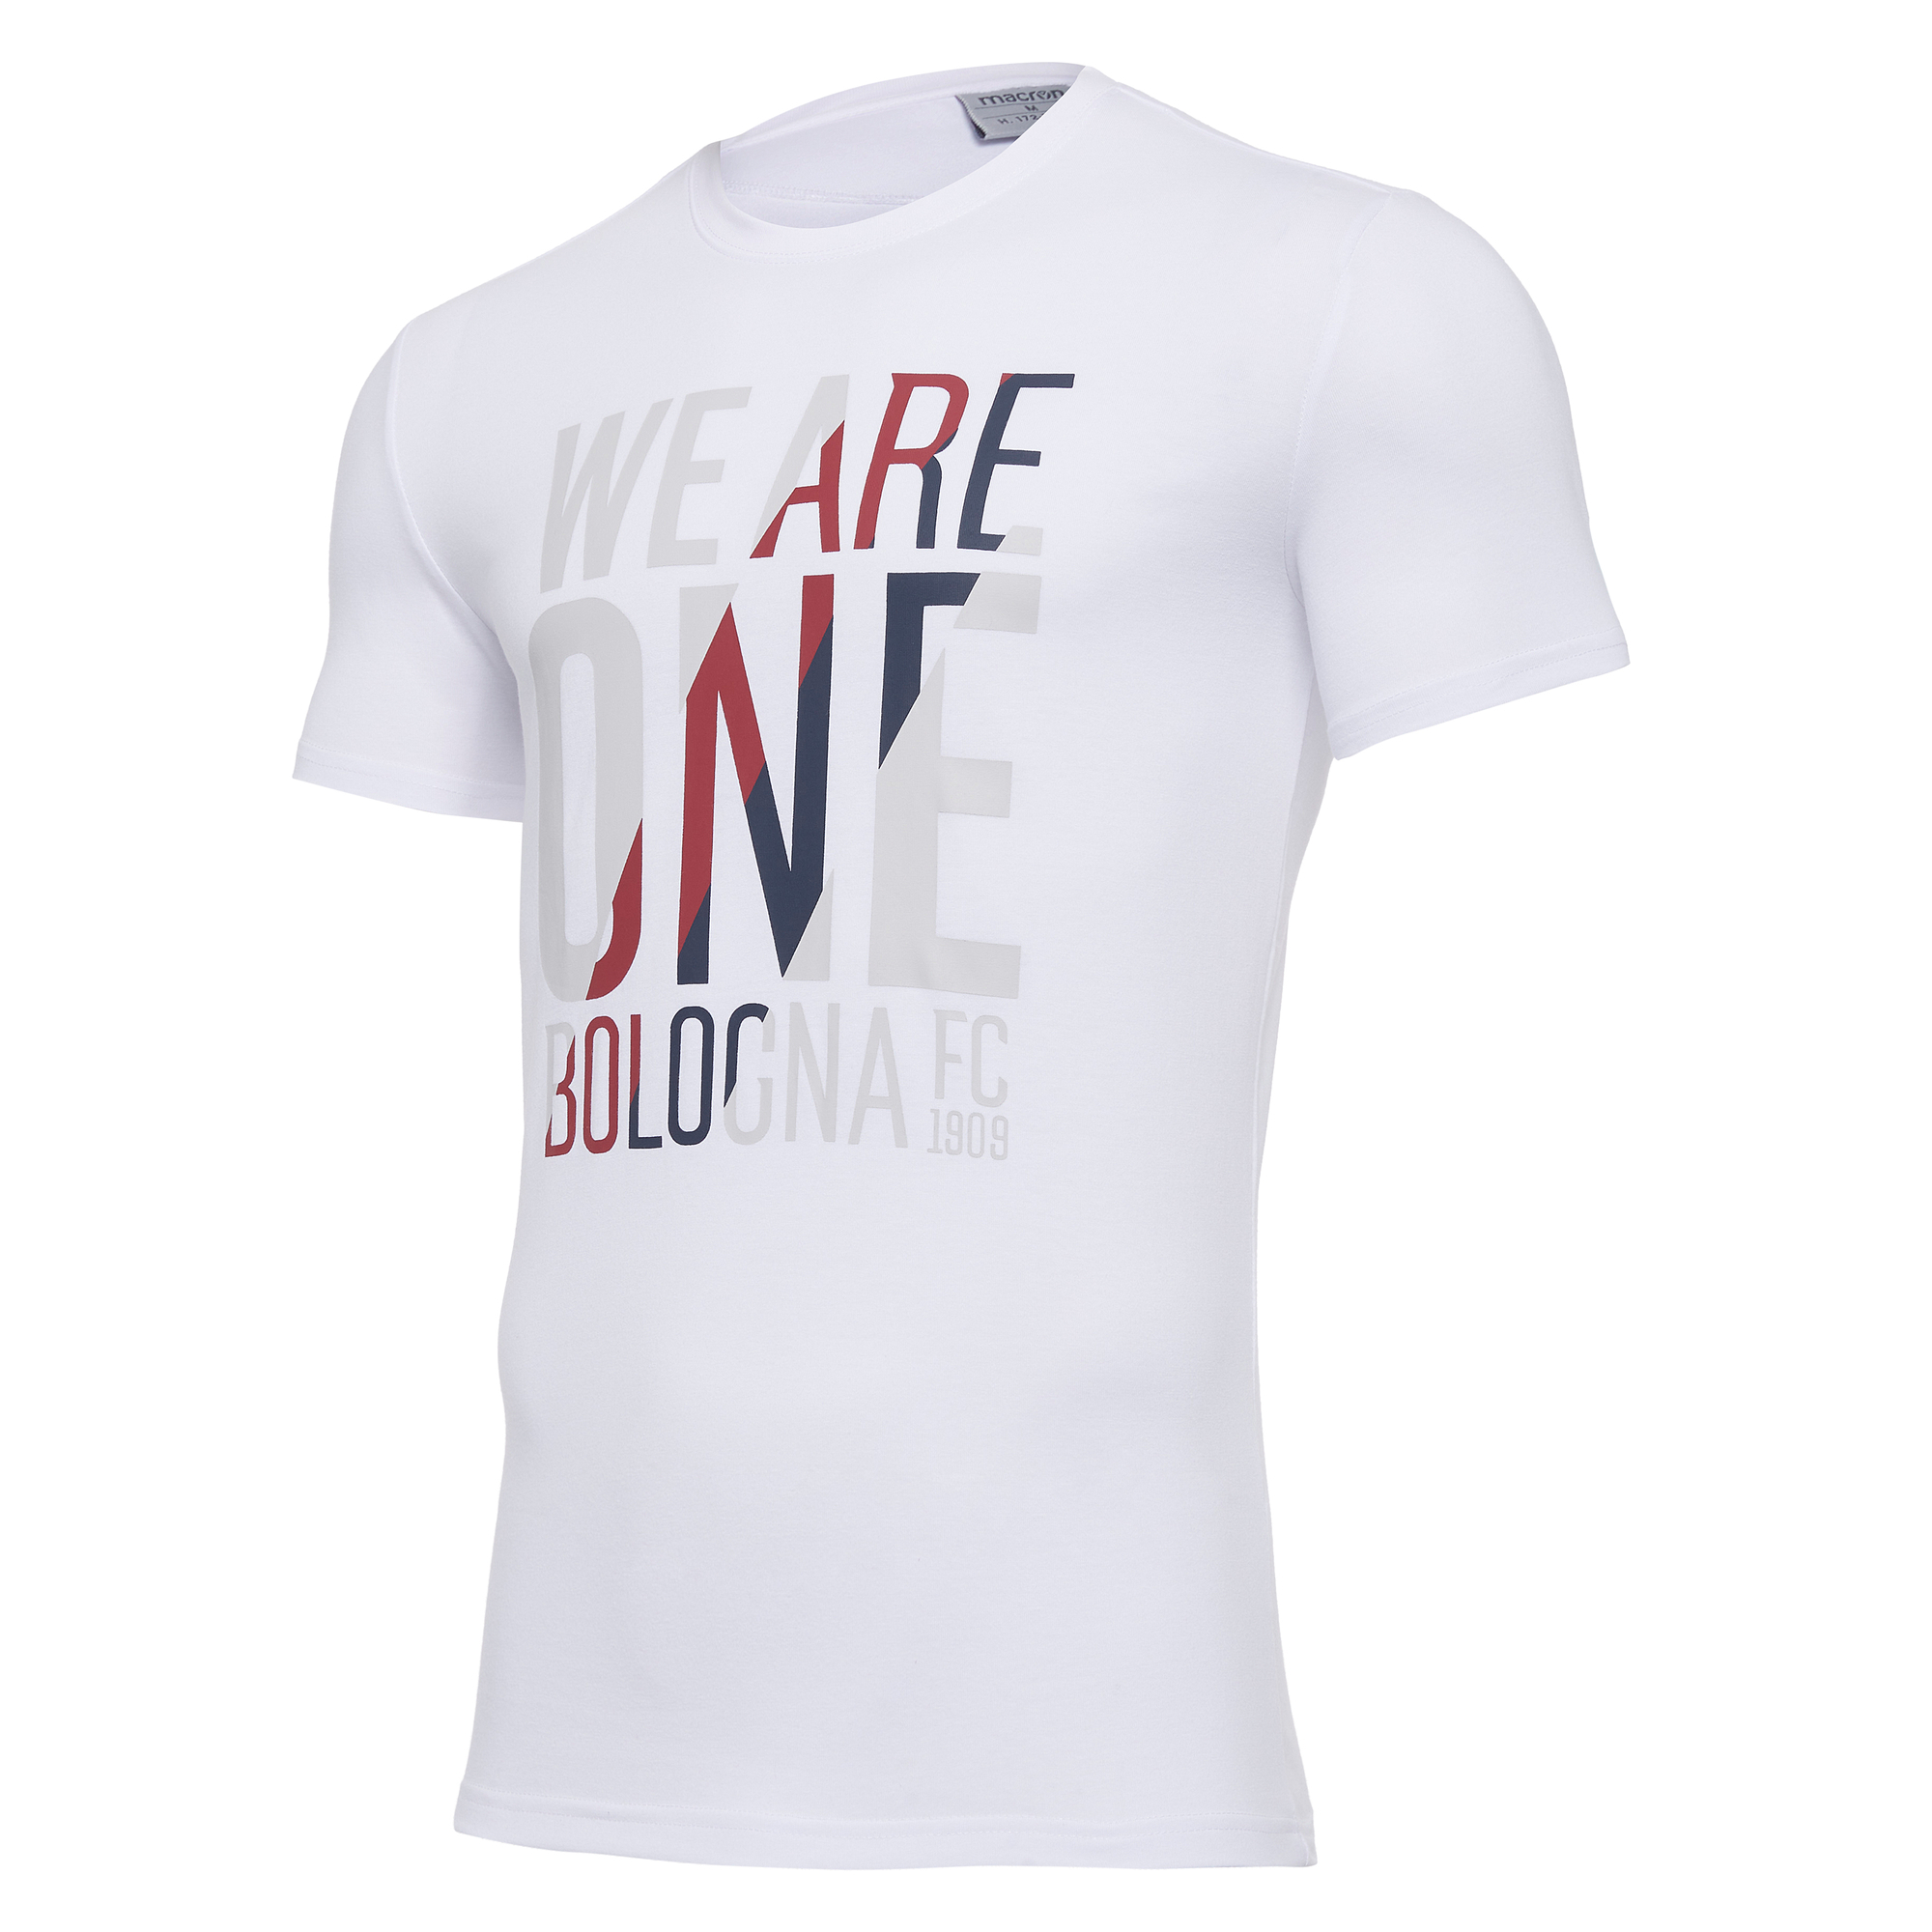 T-SHIRT COTONE WE ARE ONE 2020/21 (Adulto) Bologna Fc